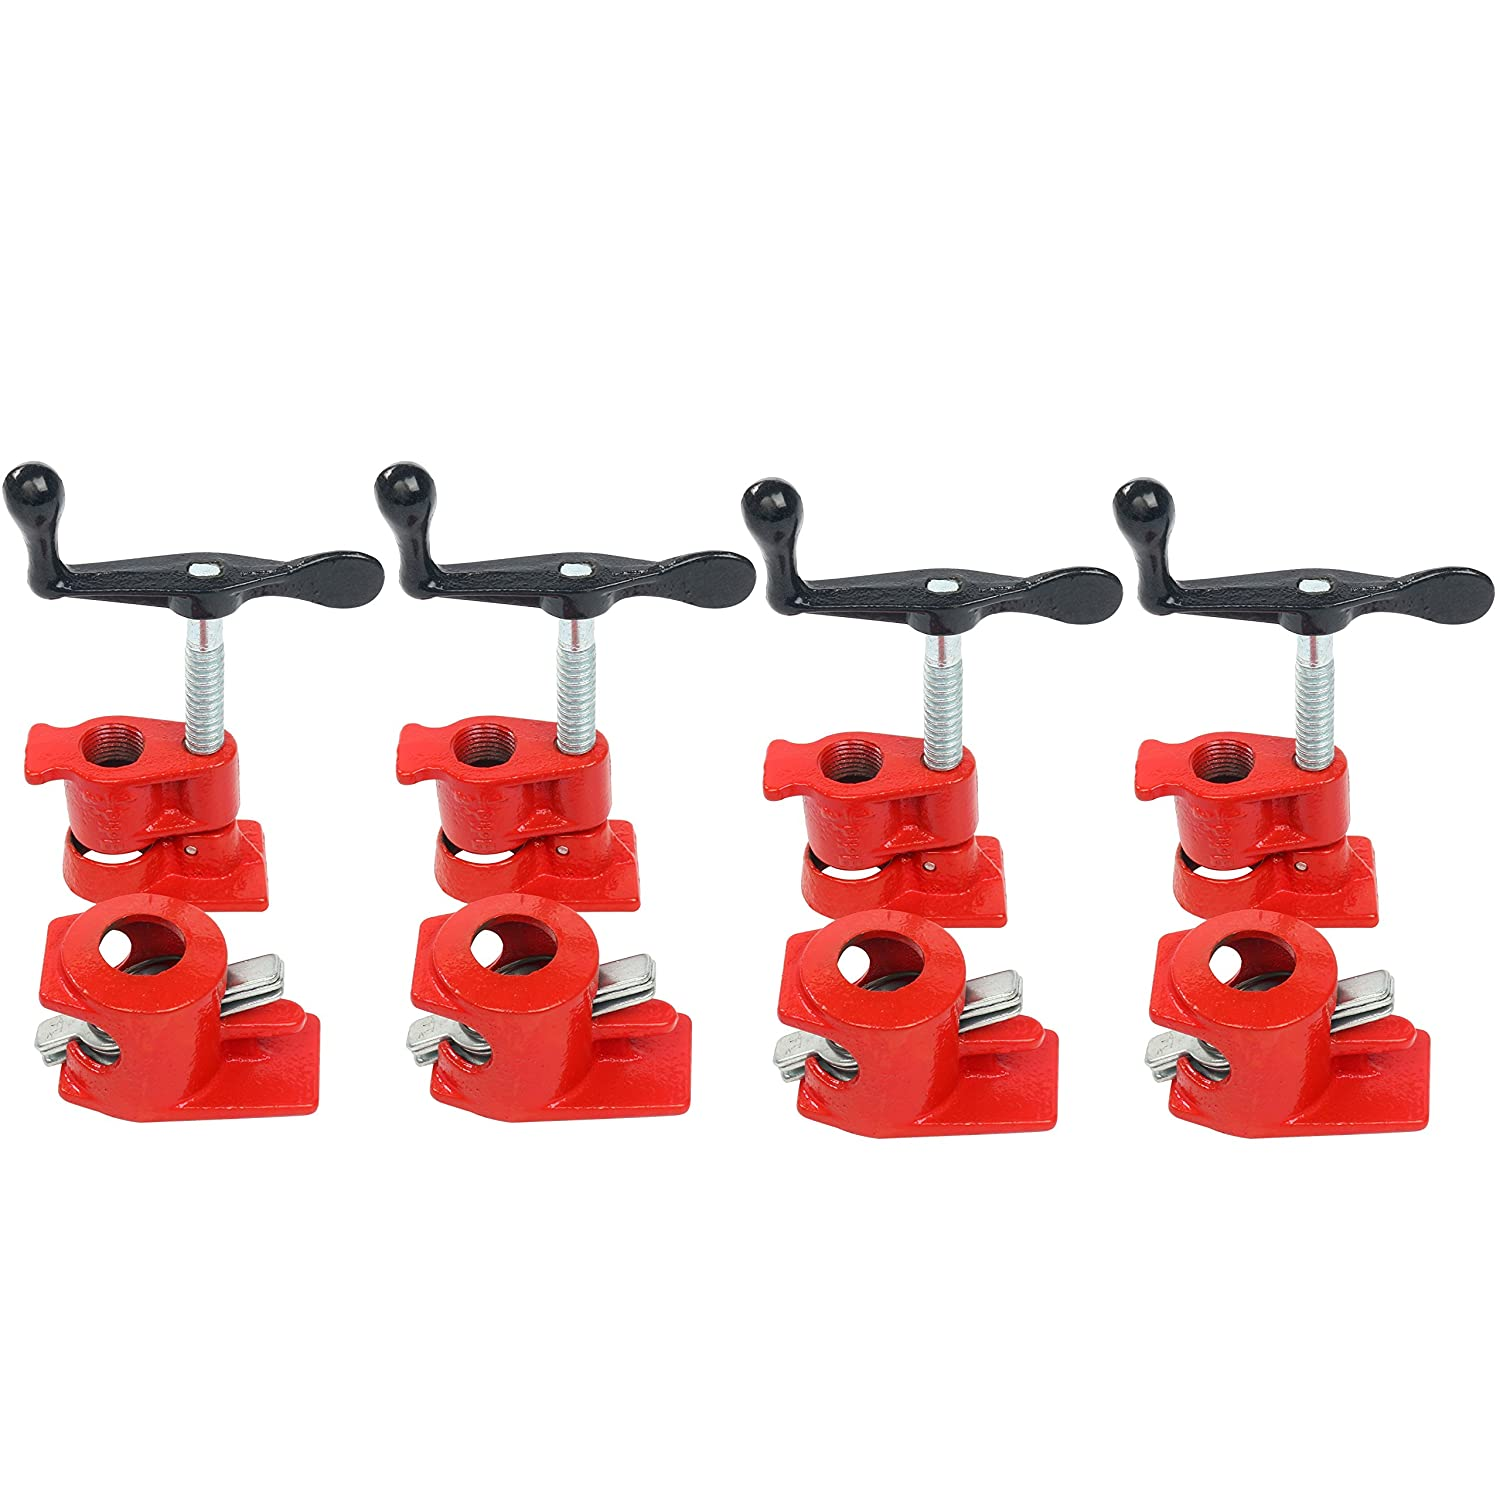 1//2 Wood Gluing Pipe Clamp Set Heavy Duty PRO Woodworking Cast Iron 4 Pack 1//2, 4 Packs